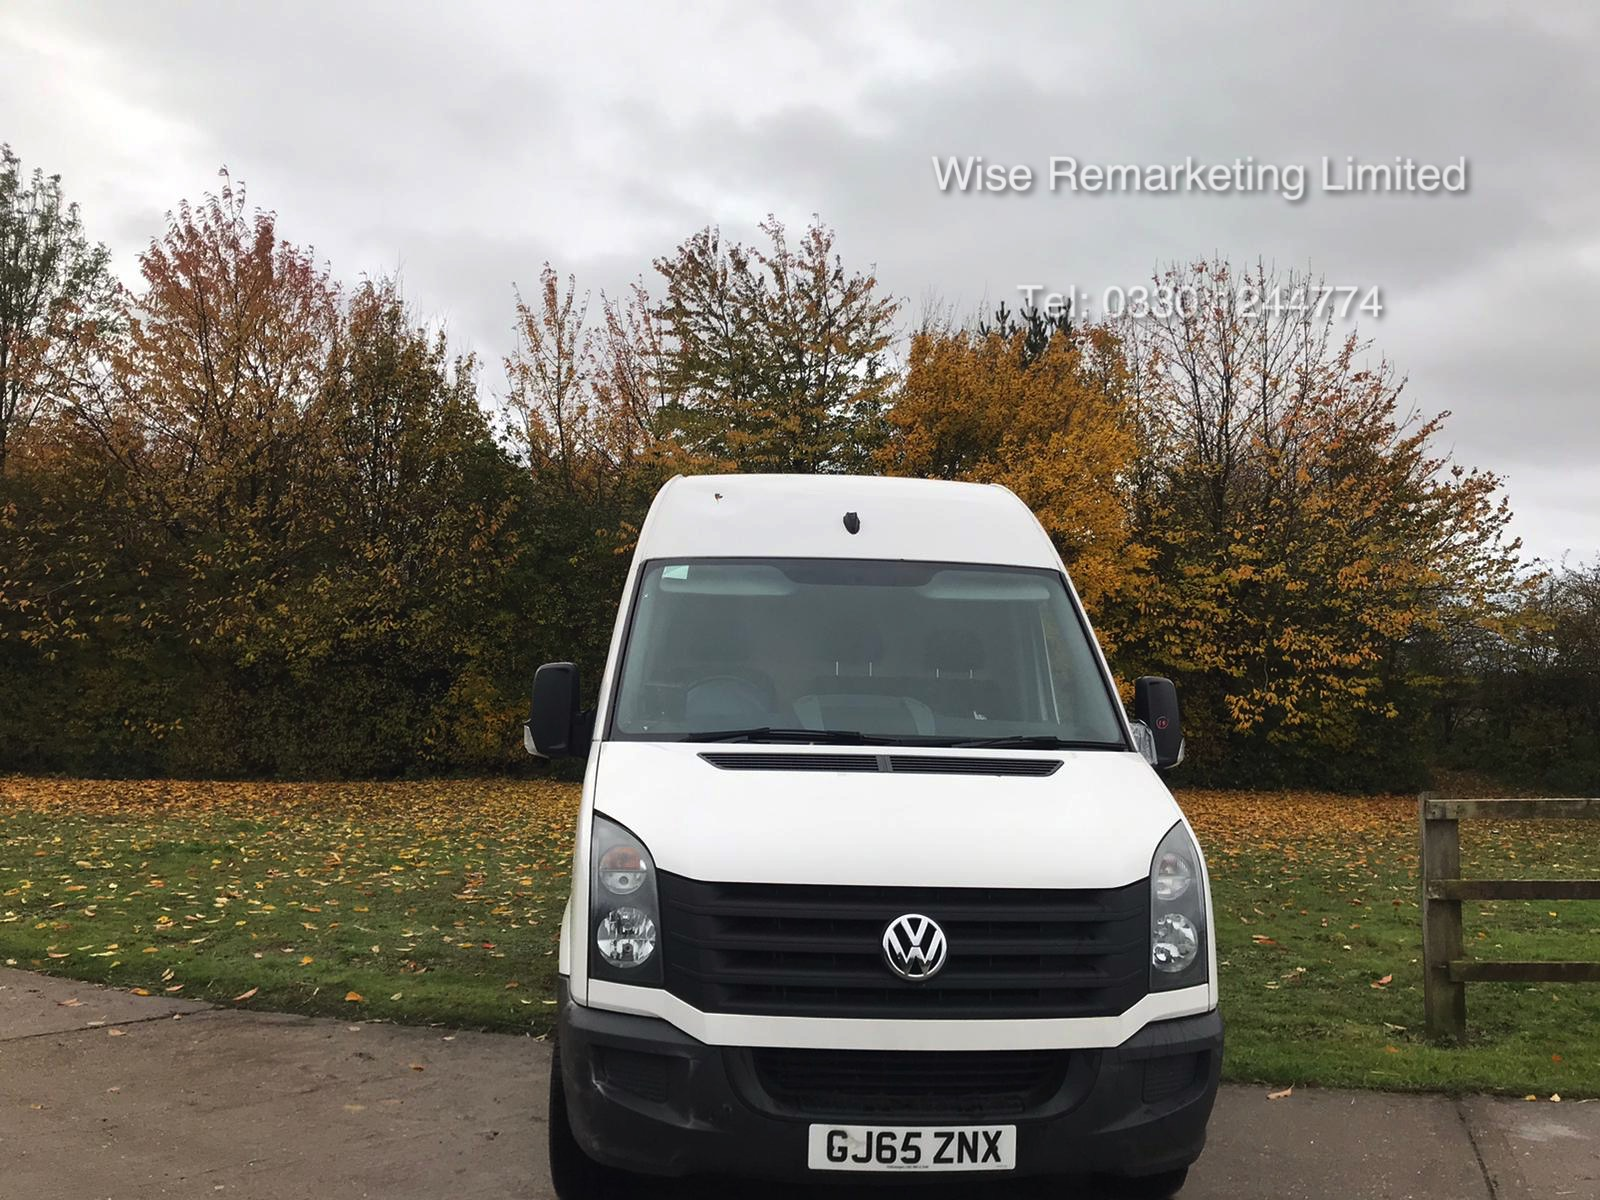 Volkswagen Crafter CR35 Startline 2.0l TDi - LWB - 2016 Model -1 Keeper From New - Service History - Image 4 of 15